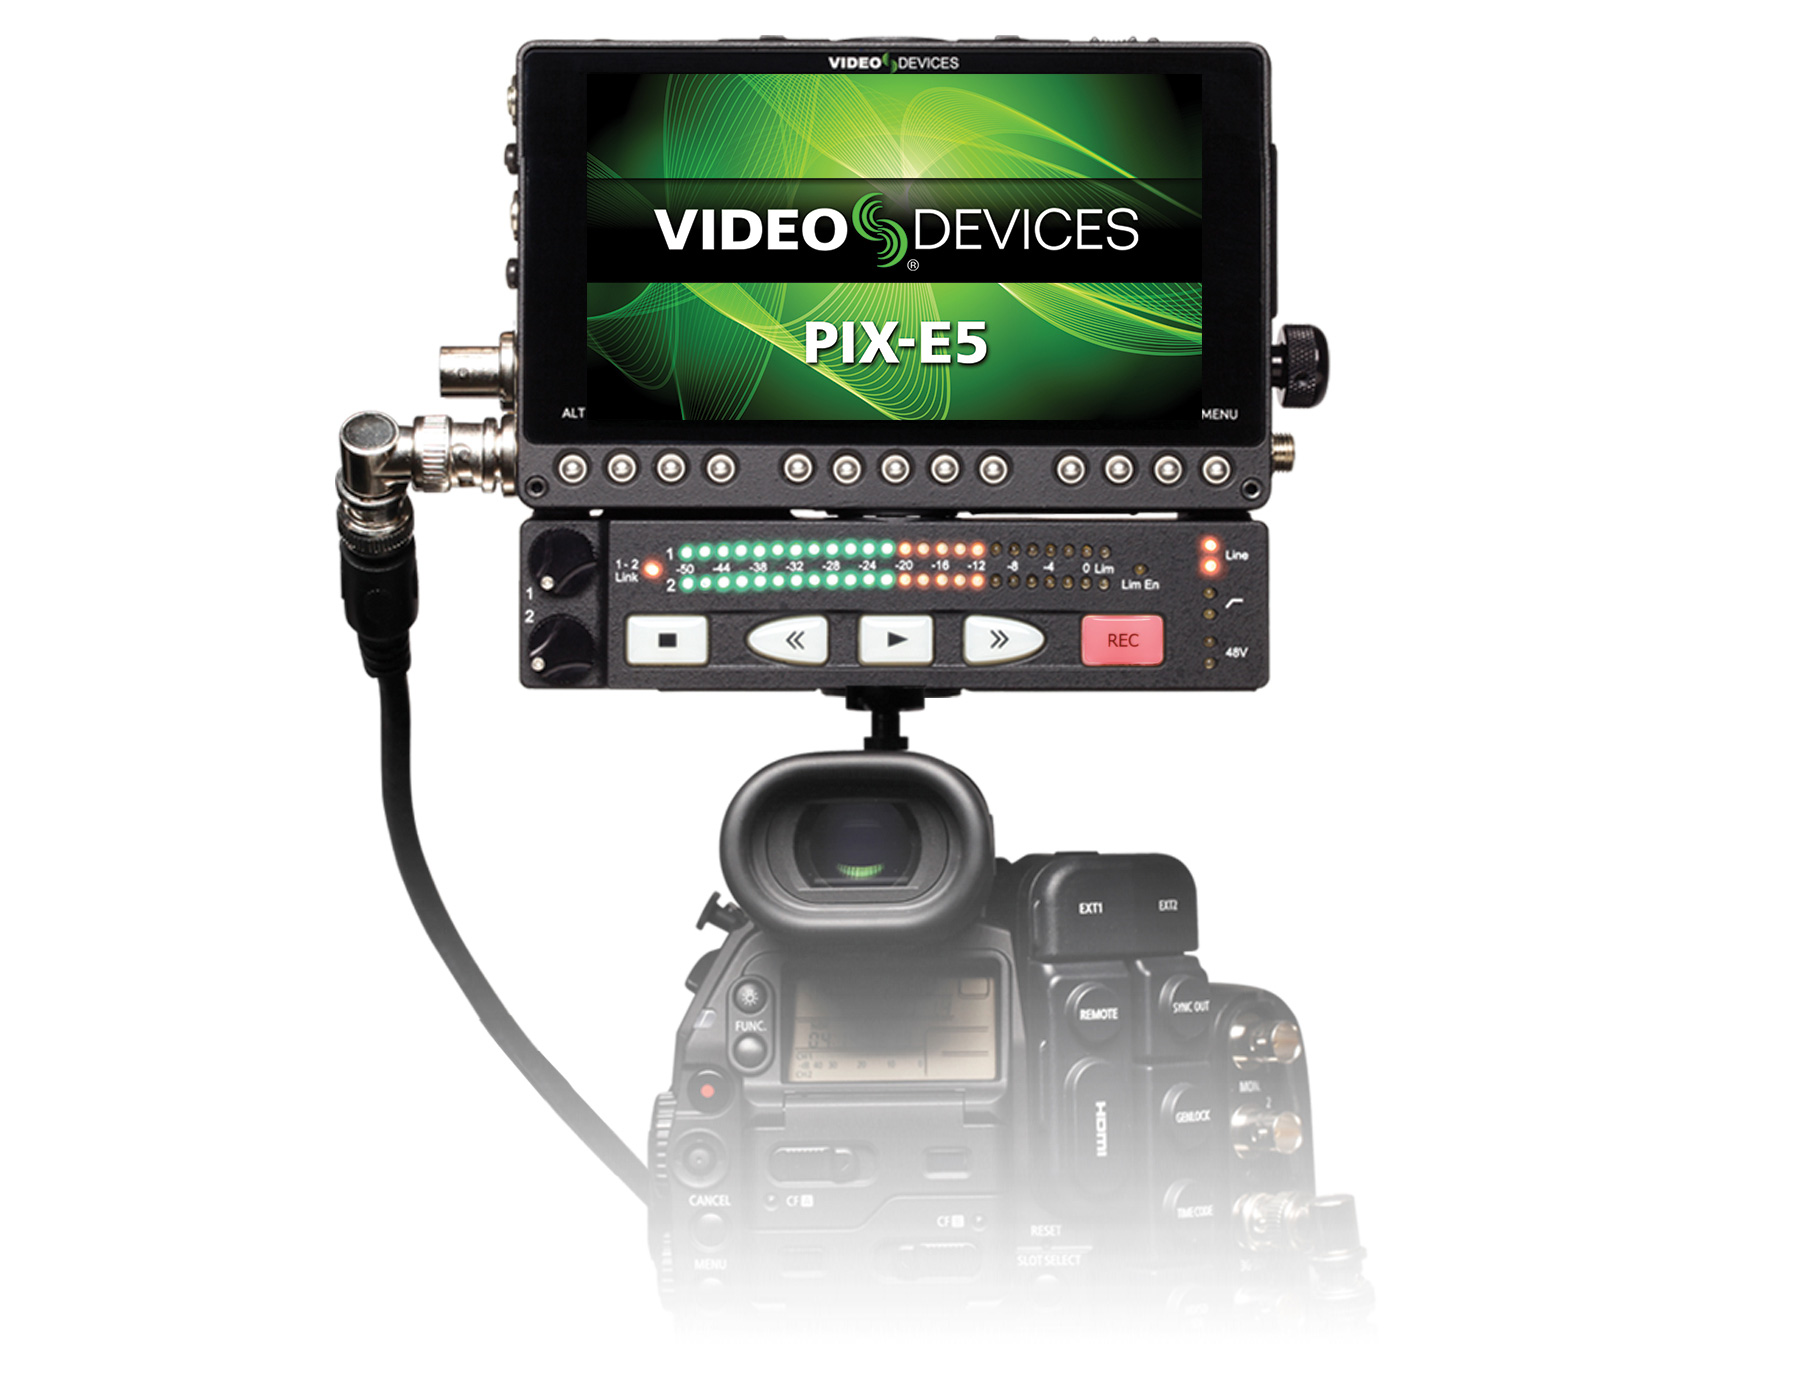 Video-Devices-PIX-E5-and-PIX-LR-on-camera